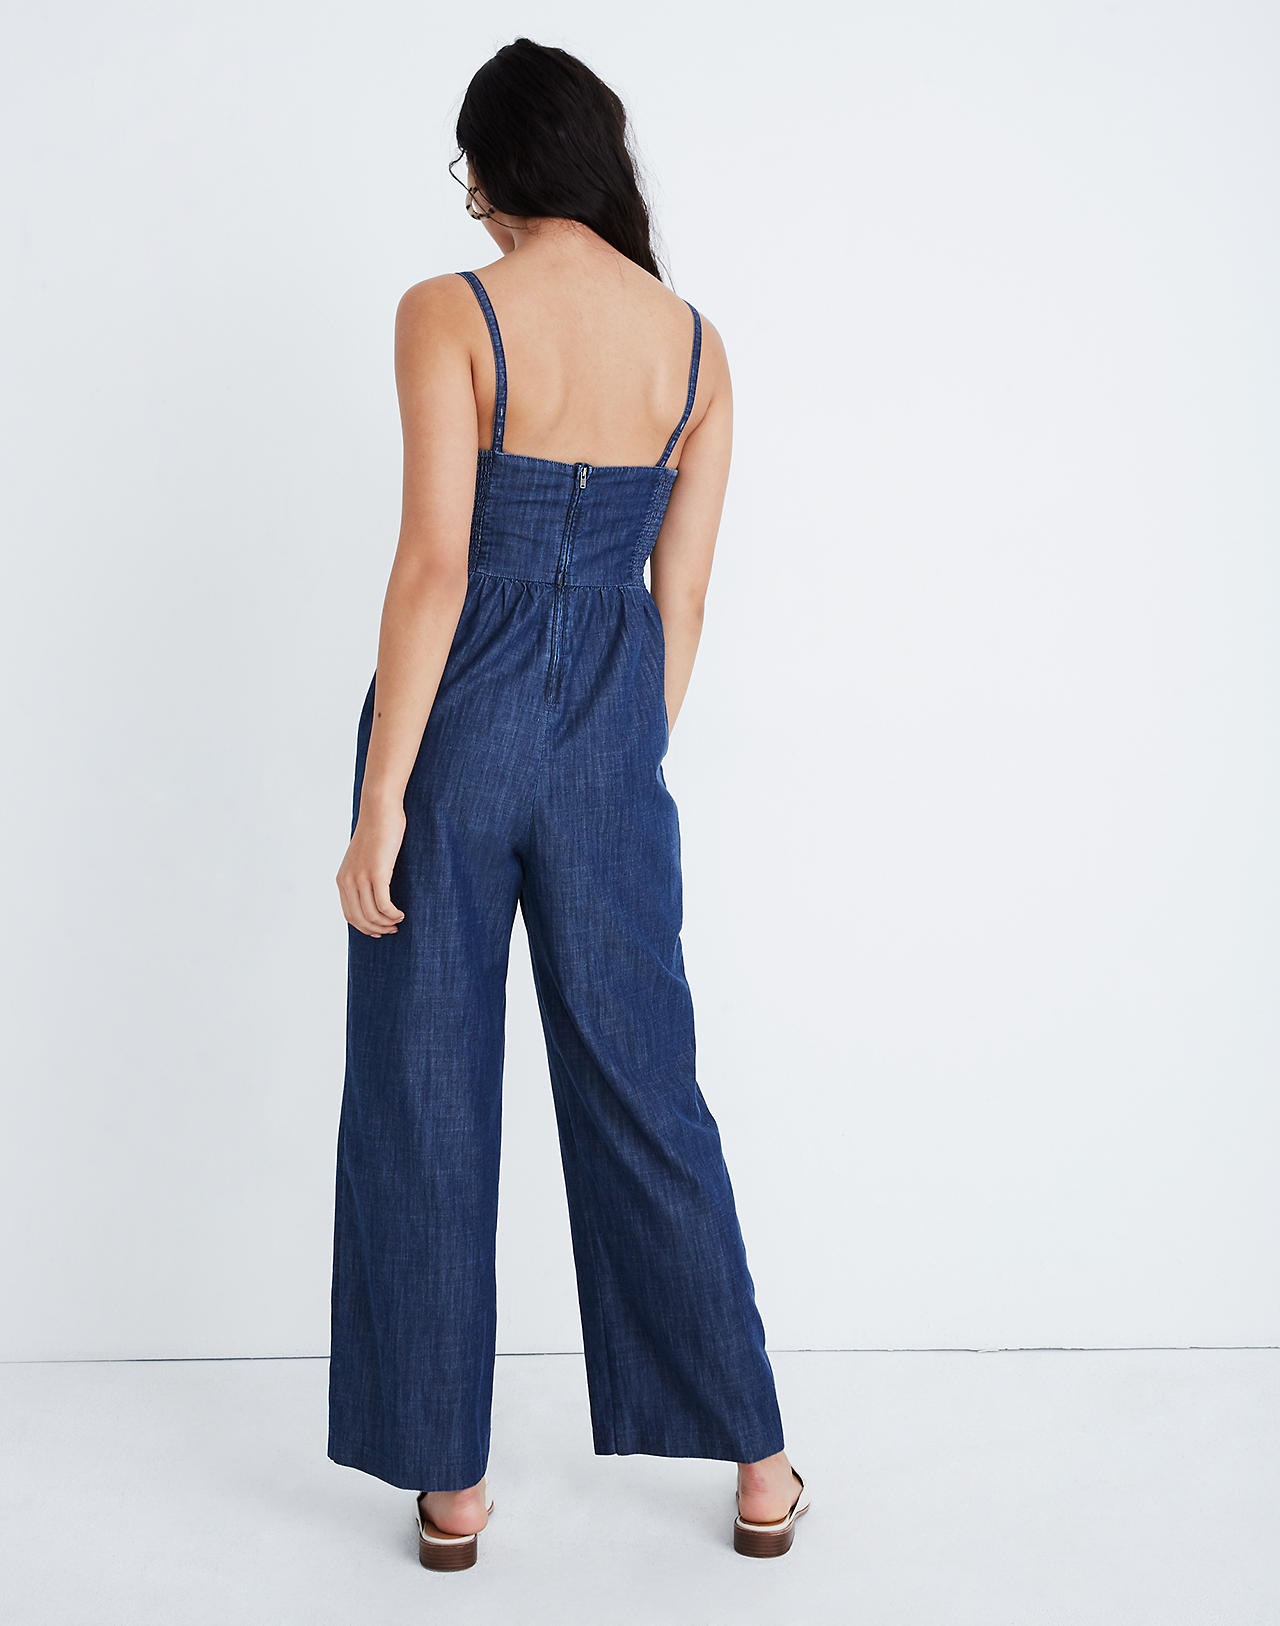 5e79602c211a Denim Thistle Cami Jumpsuit in kenney wash image 3